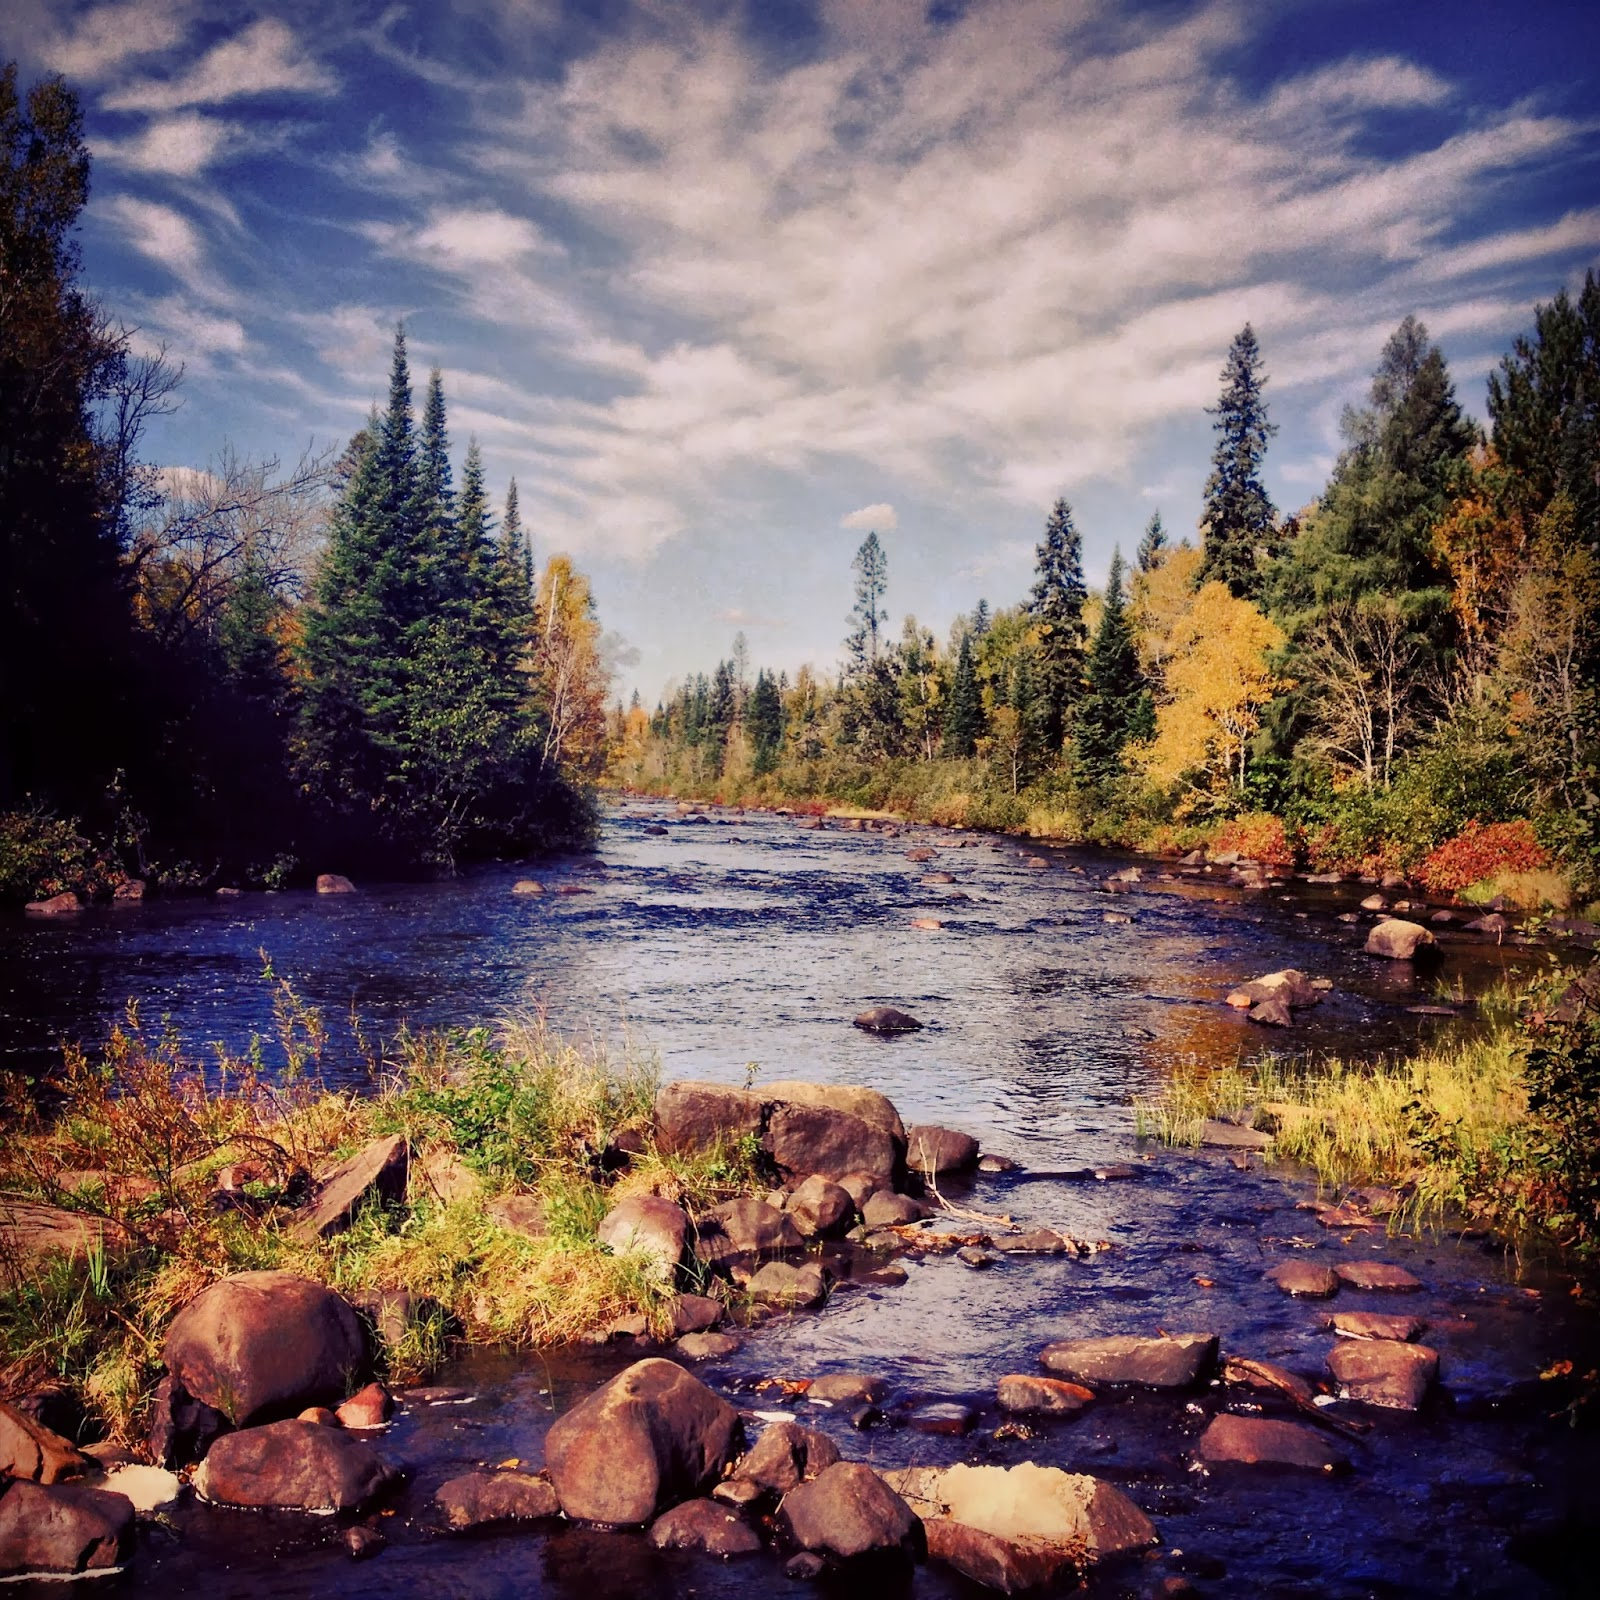 A typical river scene in Superior National Forest